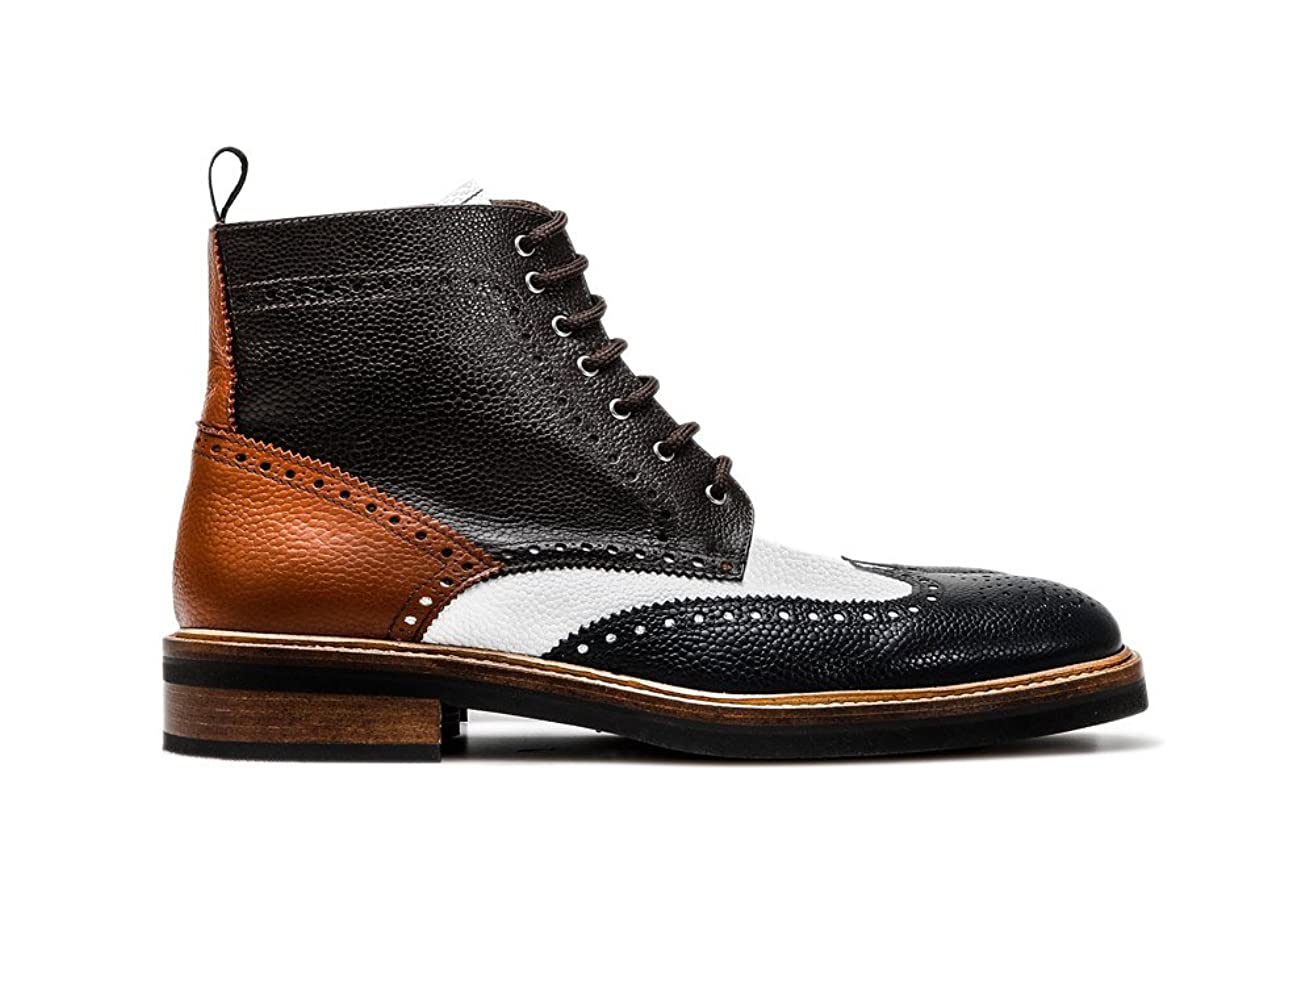 Customized Shoes - Multicolor Leather Wing Brogue Ankle Boot - Man